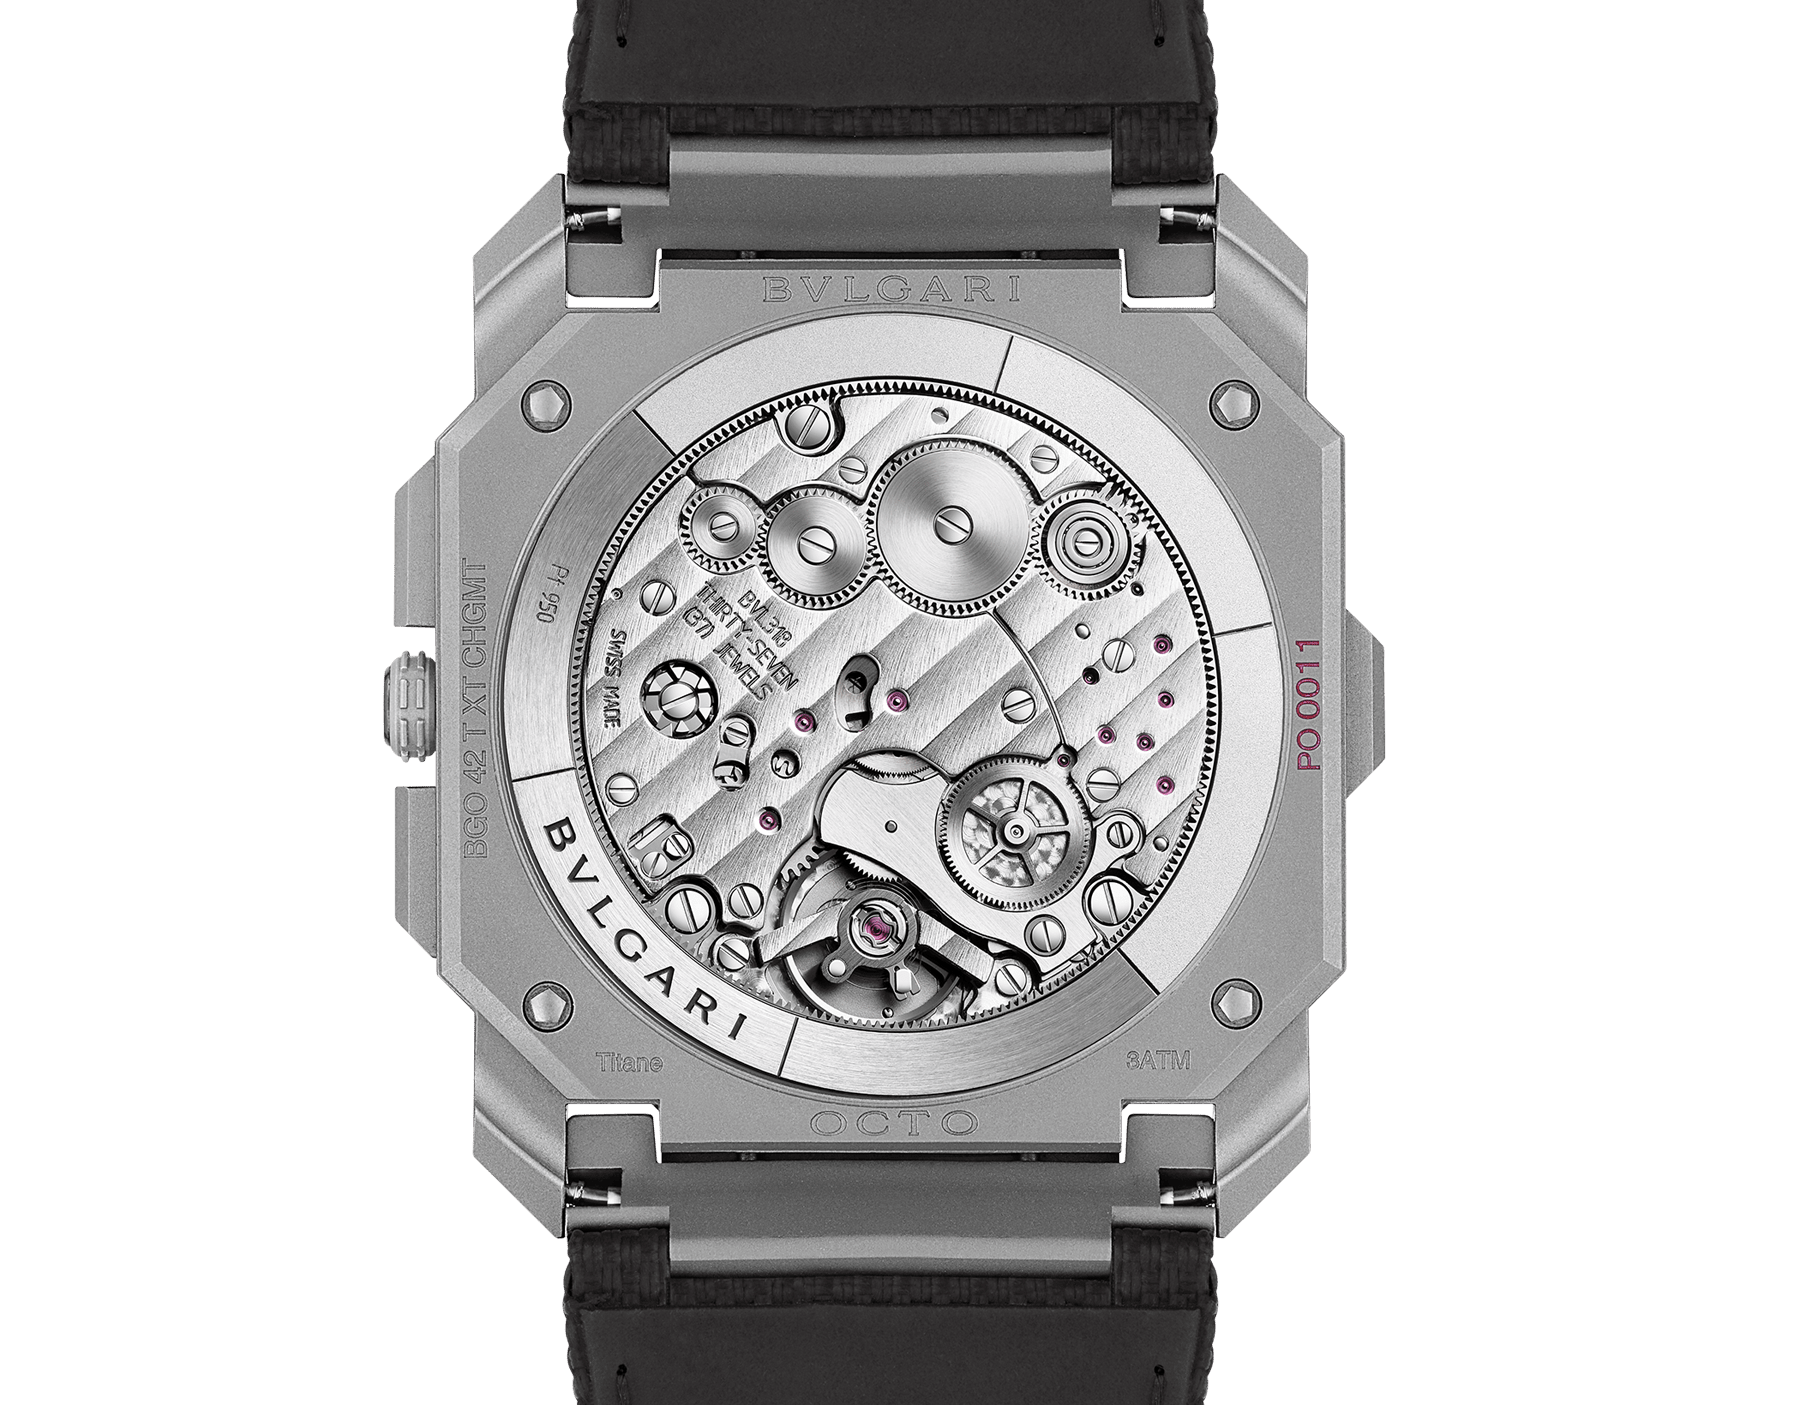 Octo Finissimo Chrono GMT watch with extra-thin mechanical manufacture chronograph and GMT movement, automatic winding with platinum peripheral rotor, titanium case, transparent case back, black dial and black rubber bracelet. Water-resistant up to 30 meters 103371 image 4